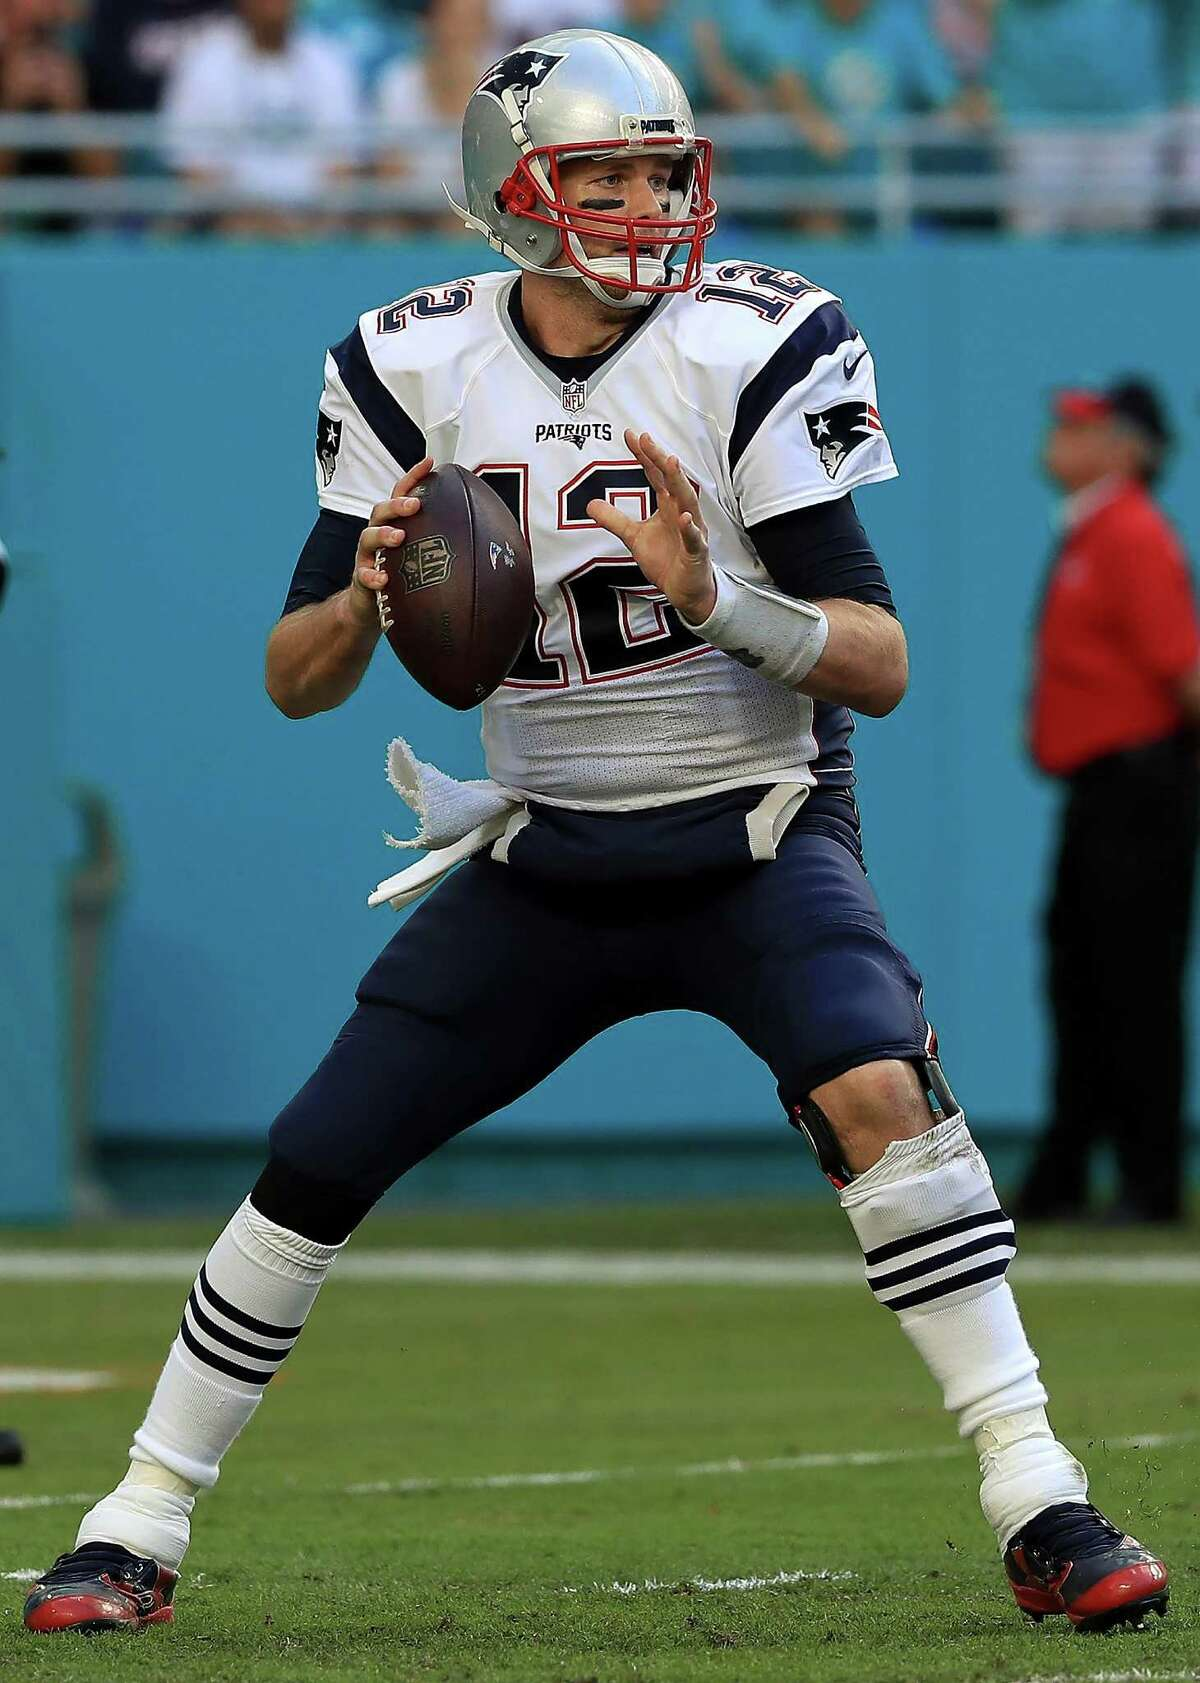 MIAMI GARDENS, FL - JANUARY 01: Tom Brady #12 of the New England Patriots passes during a game against the Miami Dolphins at Hard Rock Stadium on January 1, 2017 in Miami Gardens, Florida. (Photo by Mike Ehrmann/Getty Images)